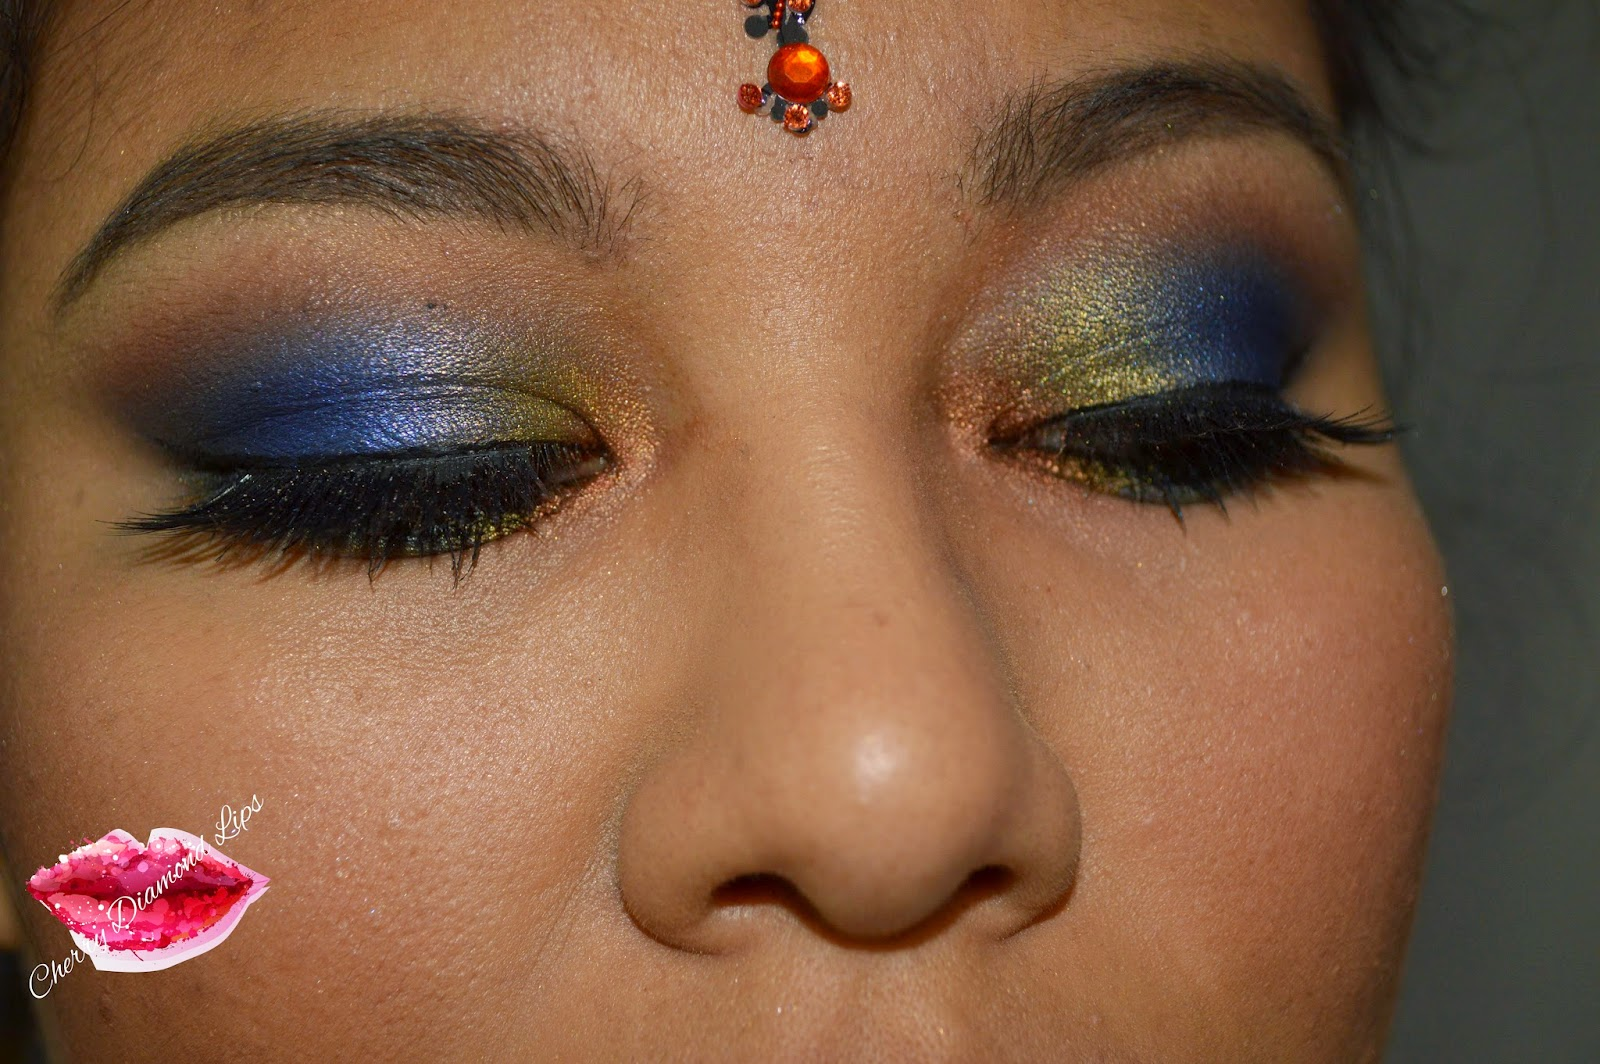 Genesis, Nabla Cosmetics, Citron, Eternity, Petra, Narciso, Rust, Makeup, Indian Bride